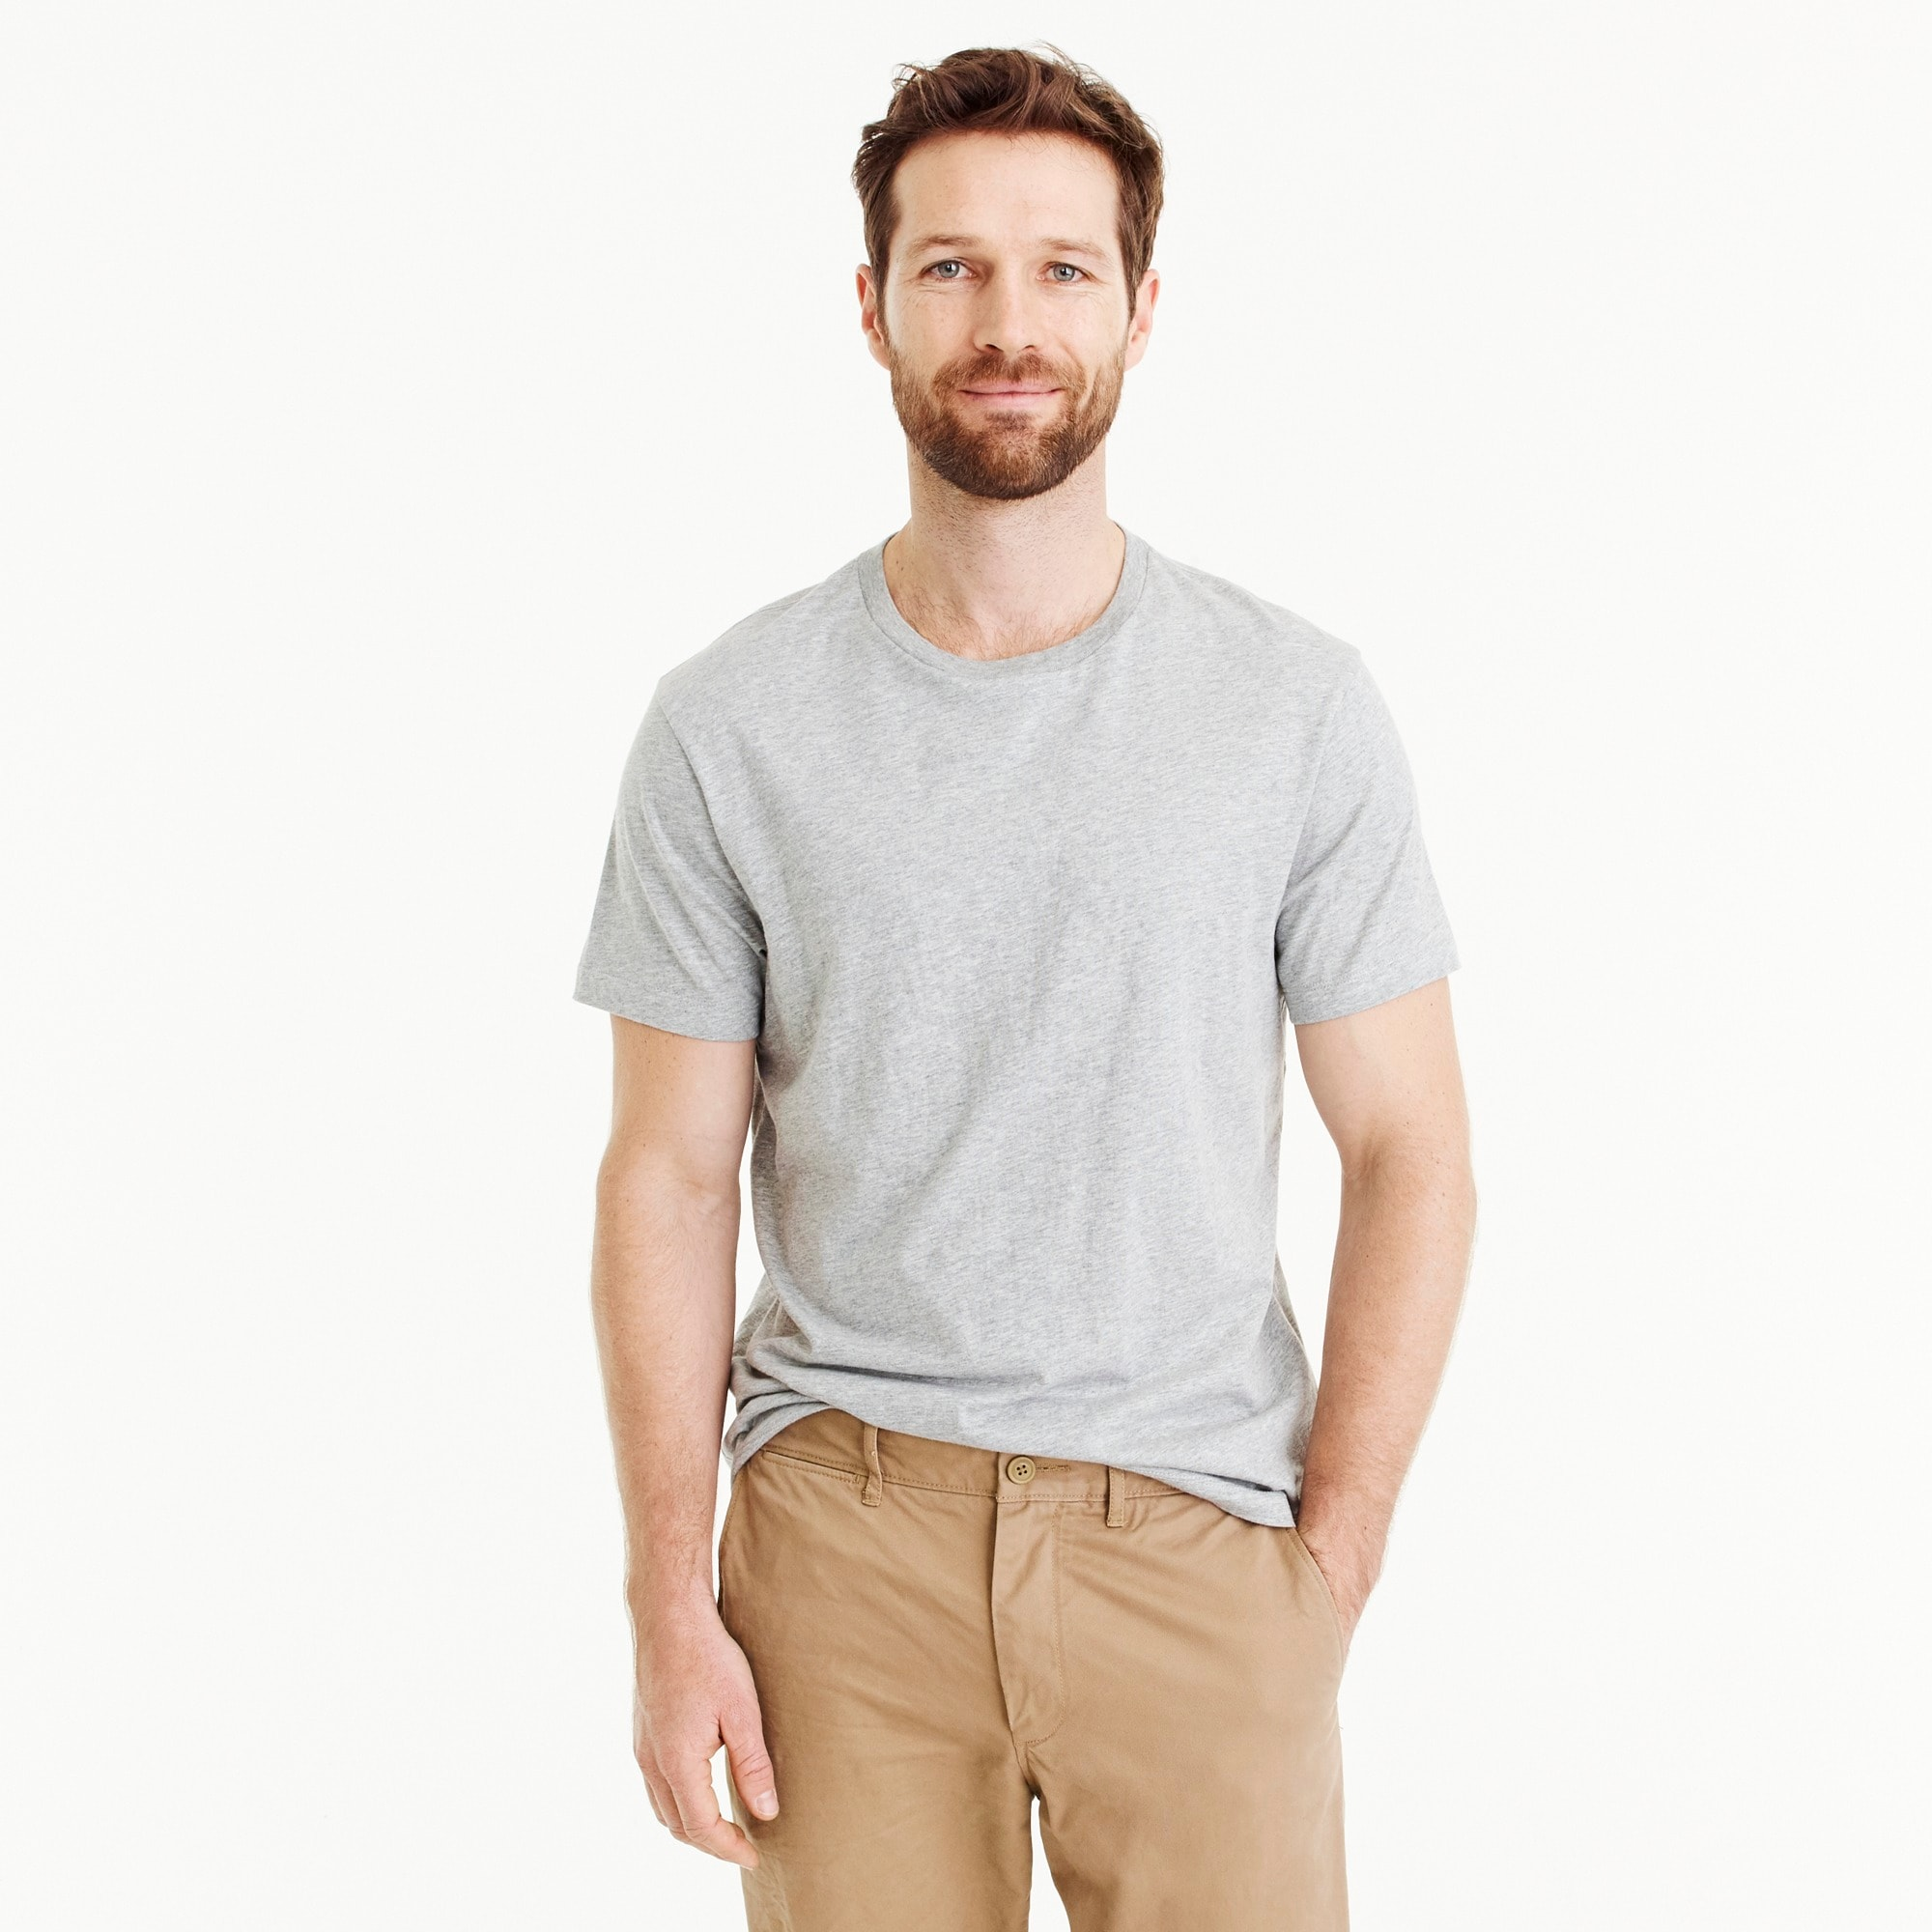 Slim J.Crew Mercantile Broken-in crewneck T-shirt in heather grey